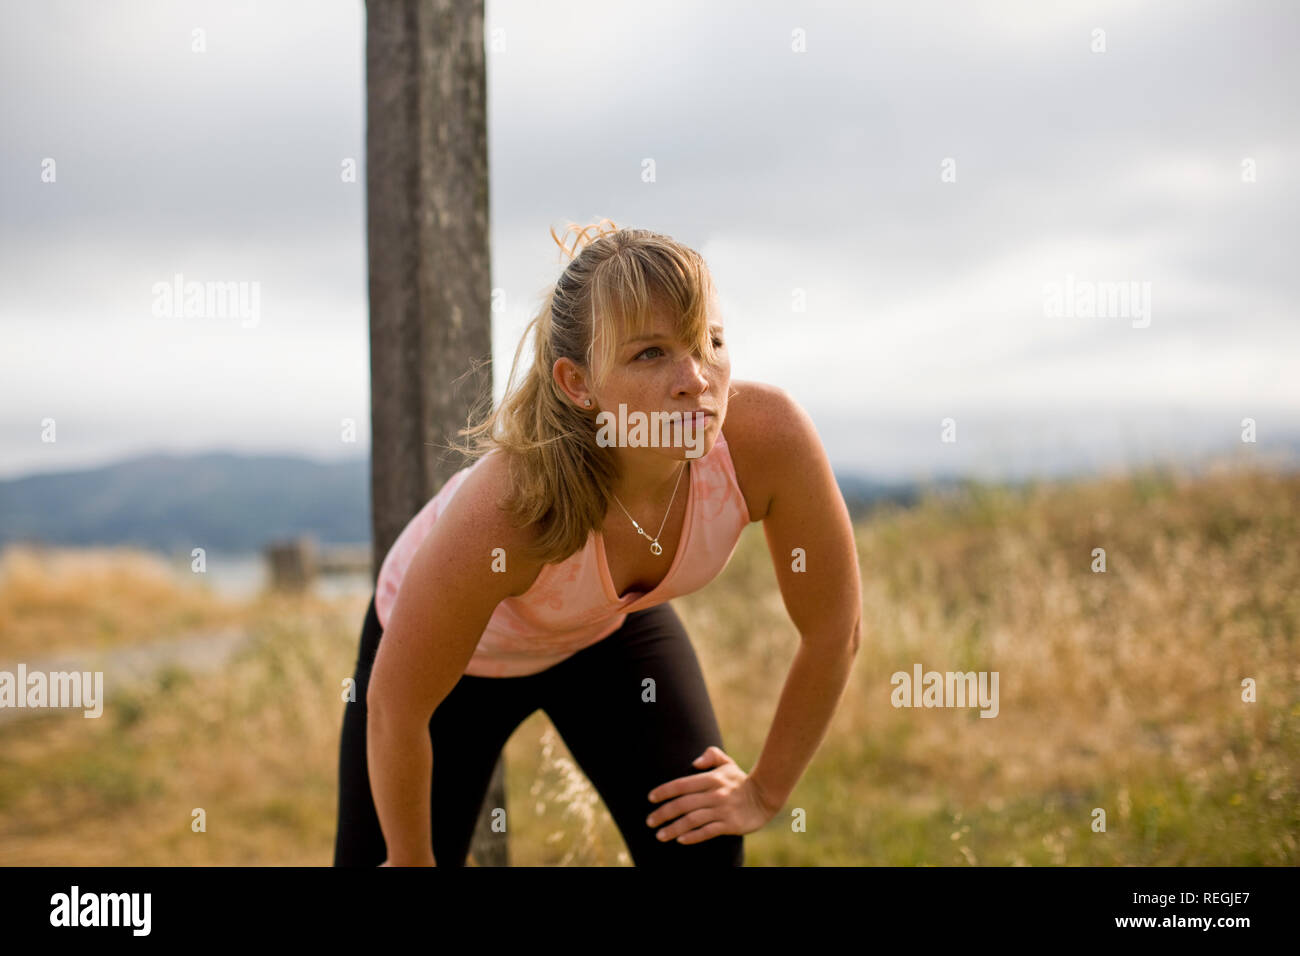 Teenage girl wearing sports gear in a field outside. Stock Photo